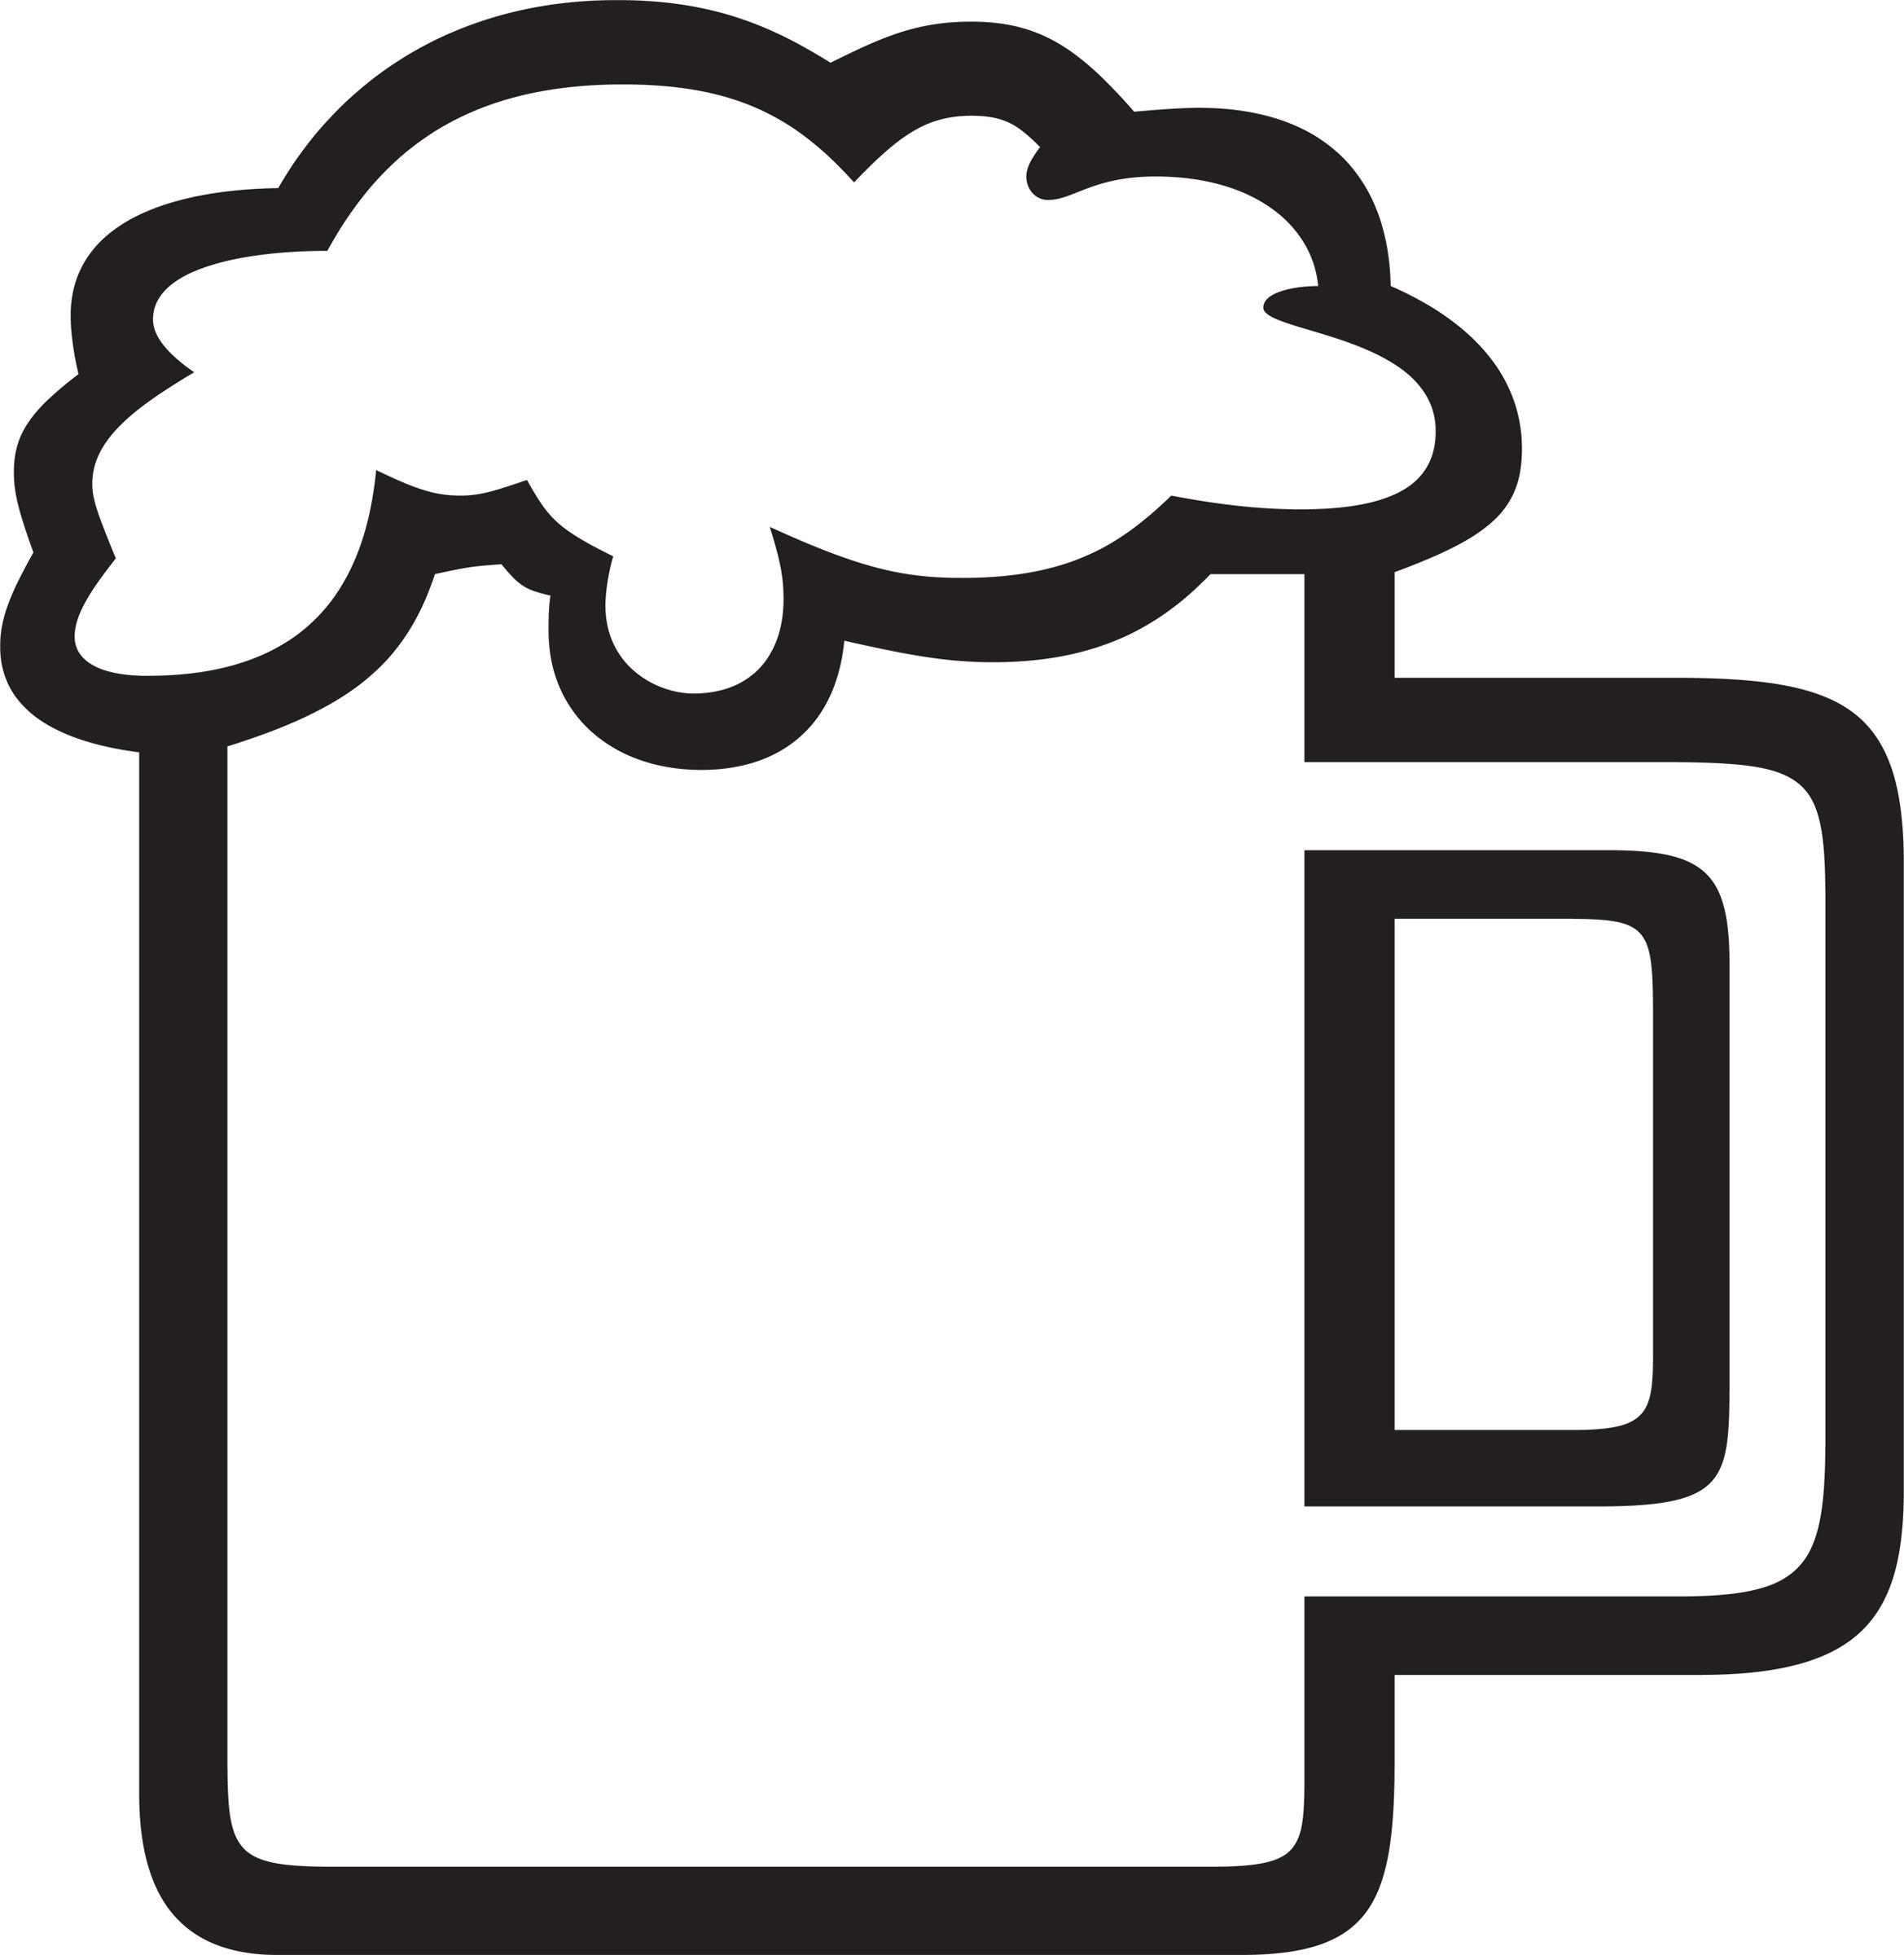 Black And White Often Abbreviated B W Or B W Is A Term Referring To A Number Of Monochrome Forms In Visual Arts D Beer Birthday Beer Theme Beer Mug Clip Art